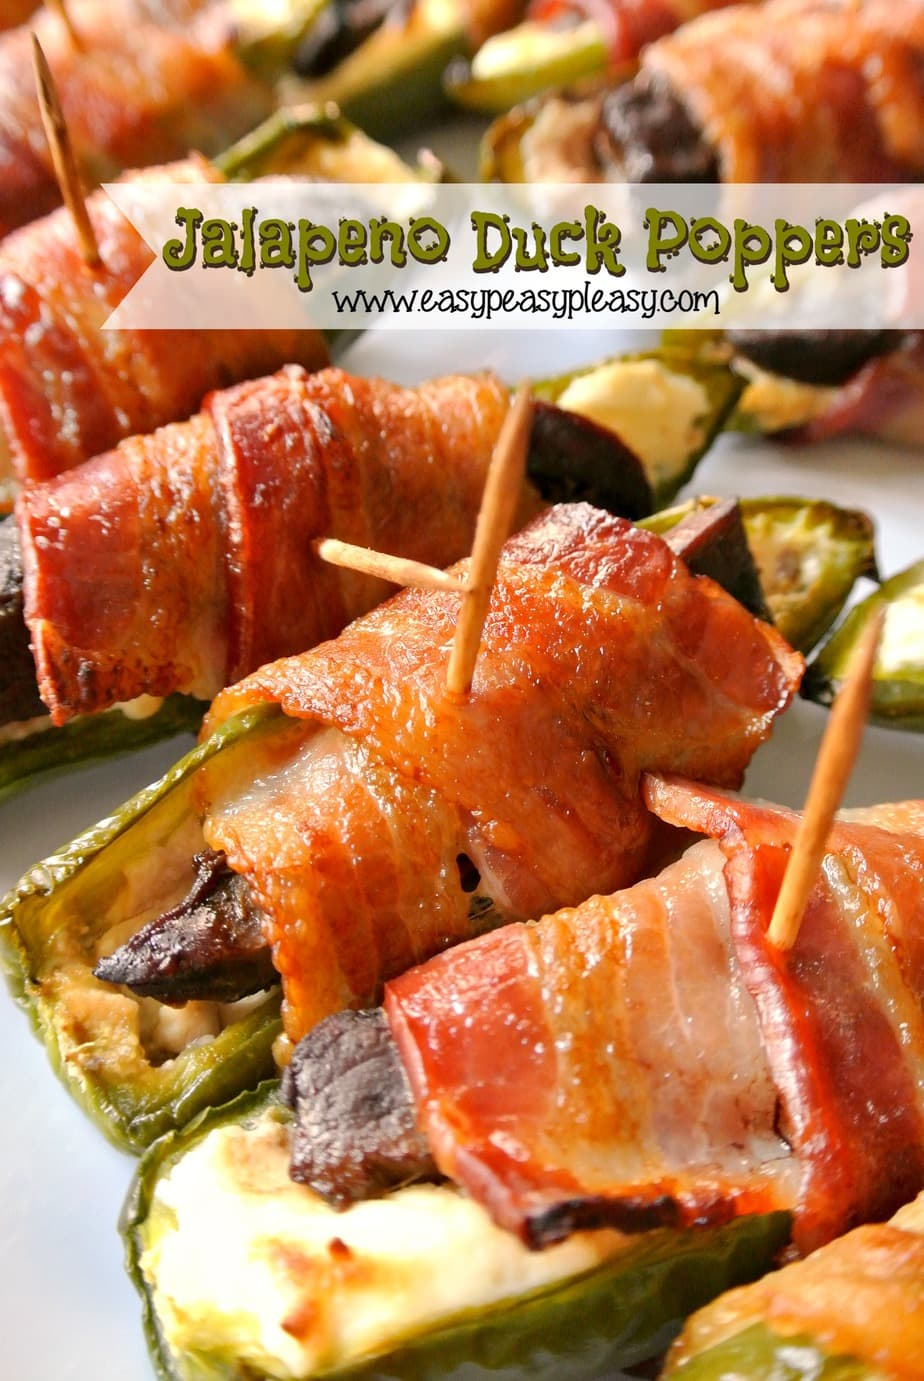 Don't tell my husband but I'm giving away his secret ingredient that makes these Jalapeno Duck Poppers so delicious!